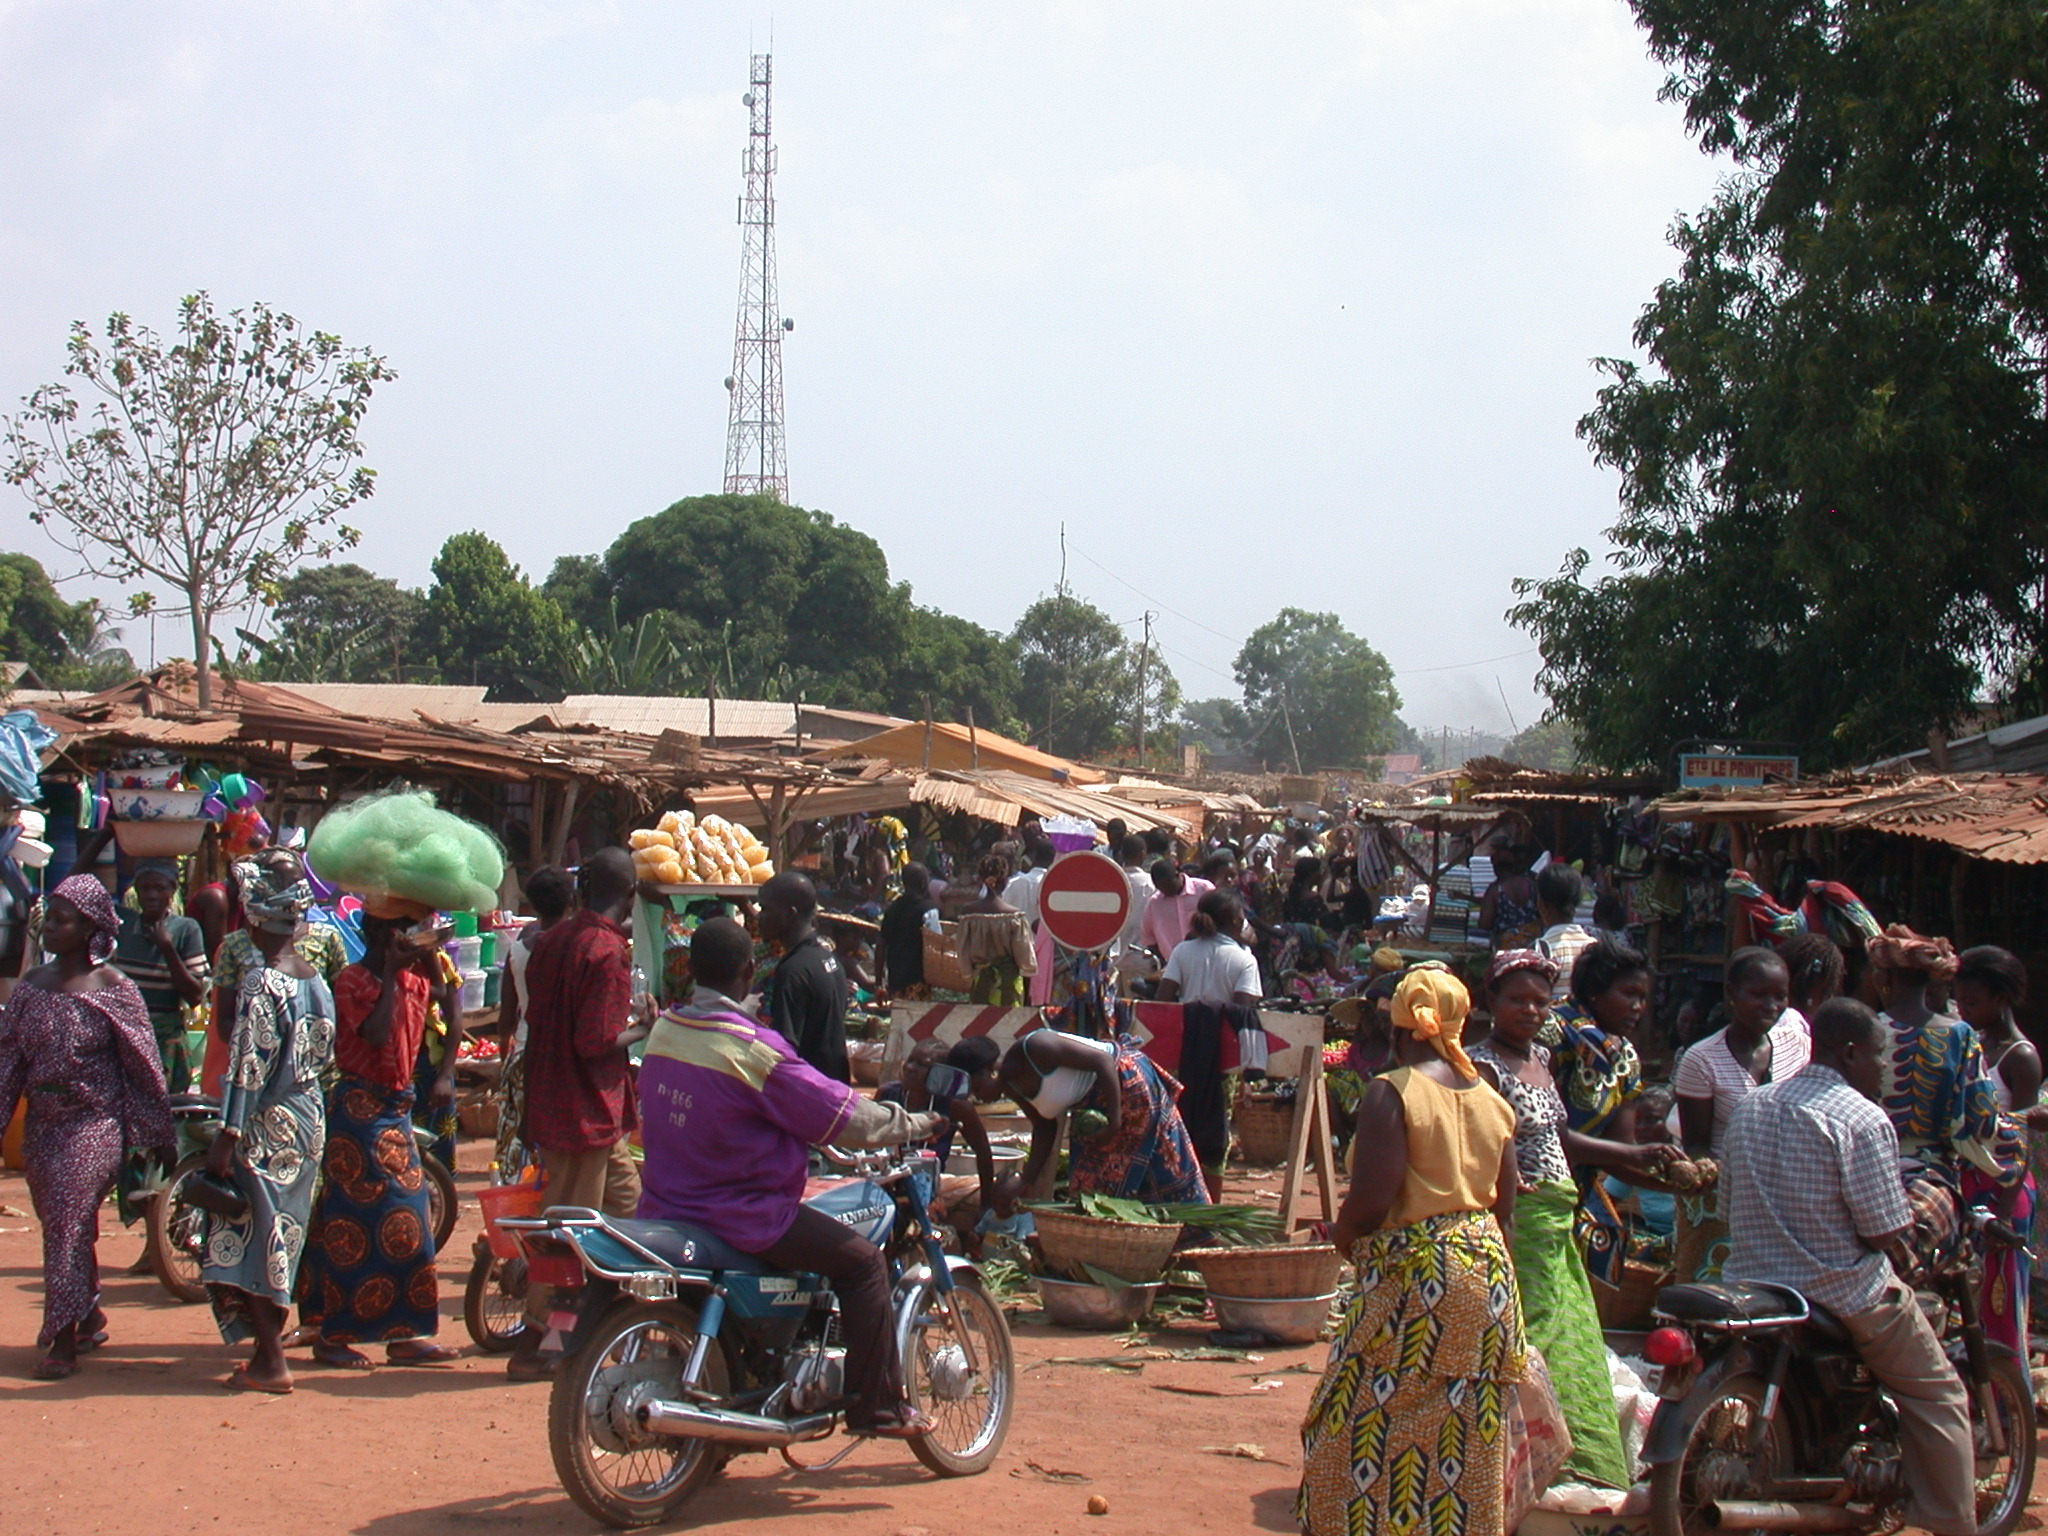 One of the Markets on Route Between Palaces, Abomey, Benin